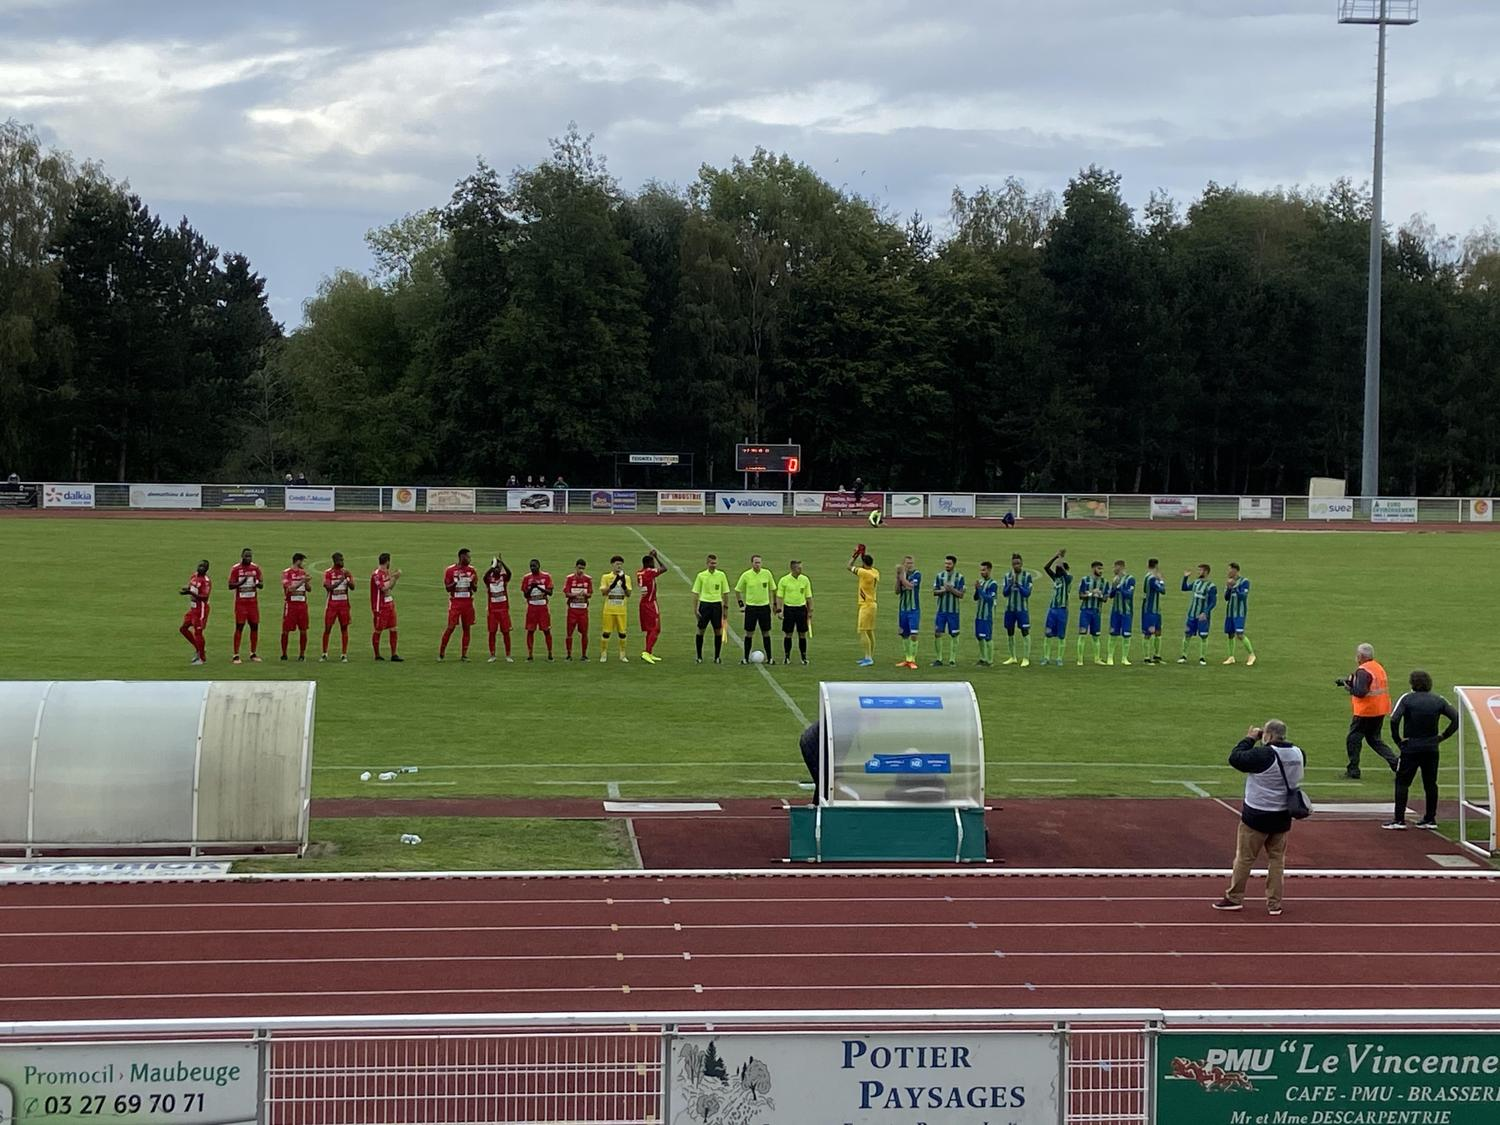 Premier match de la saison en National 3